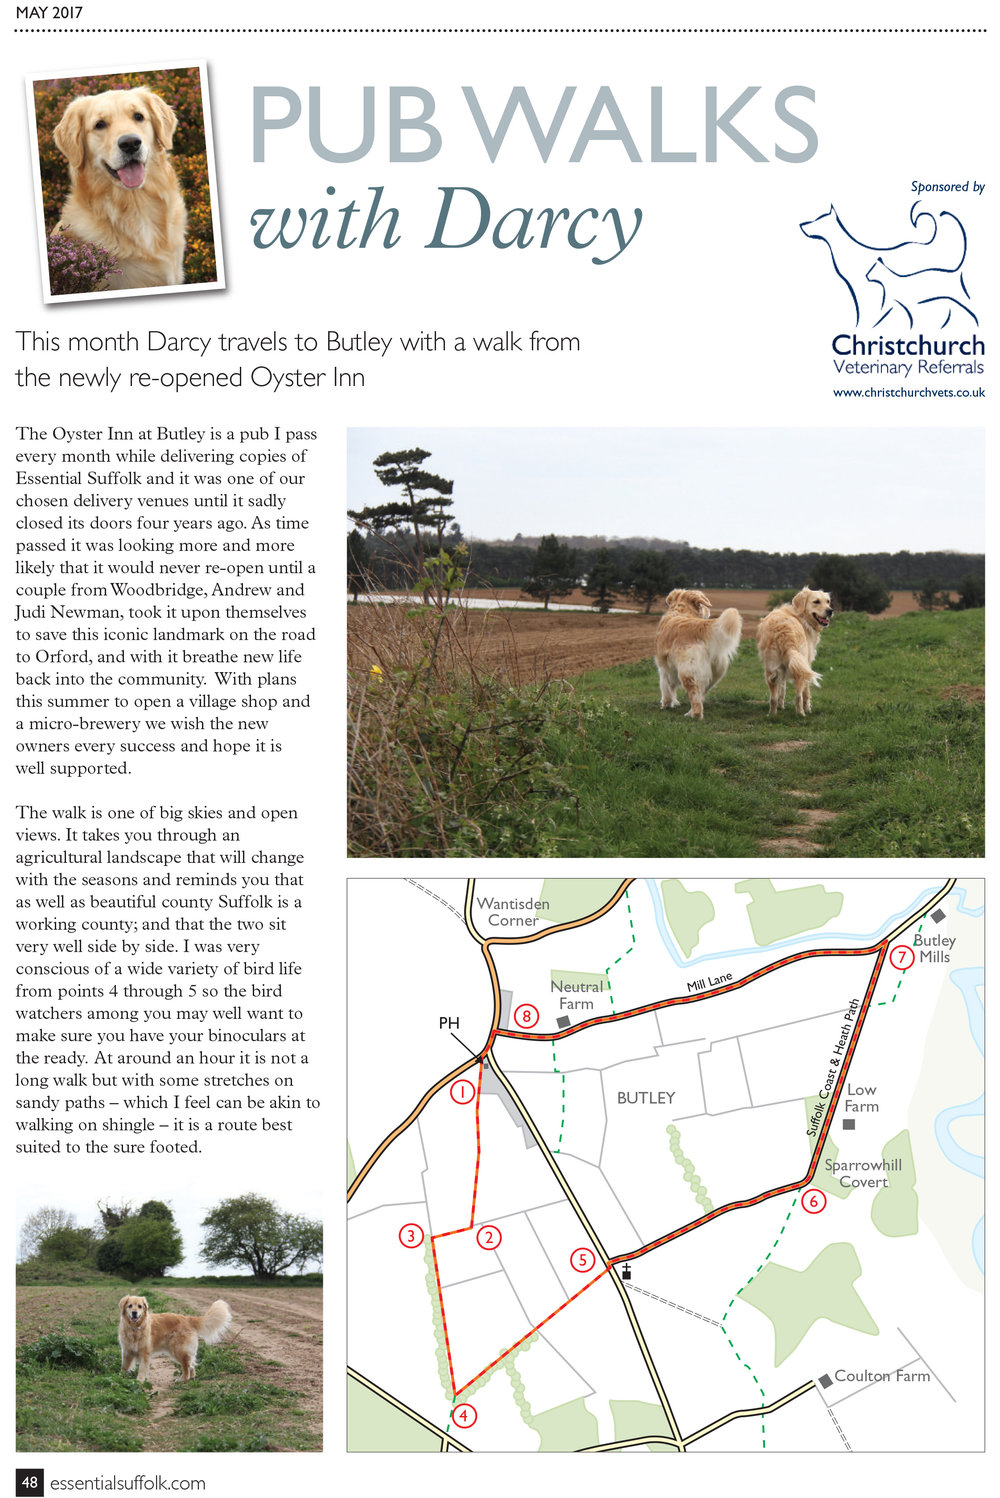 Butley Dog Walk page 1